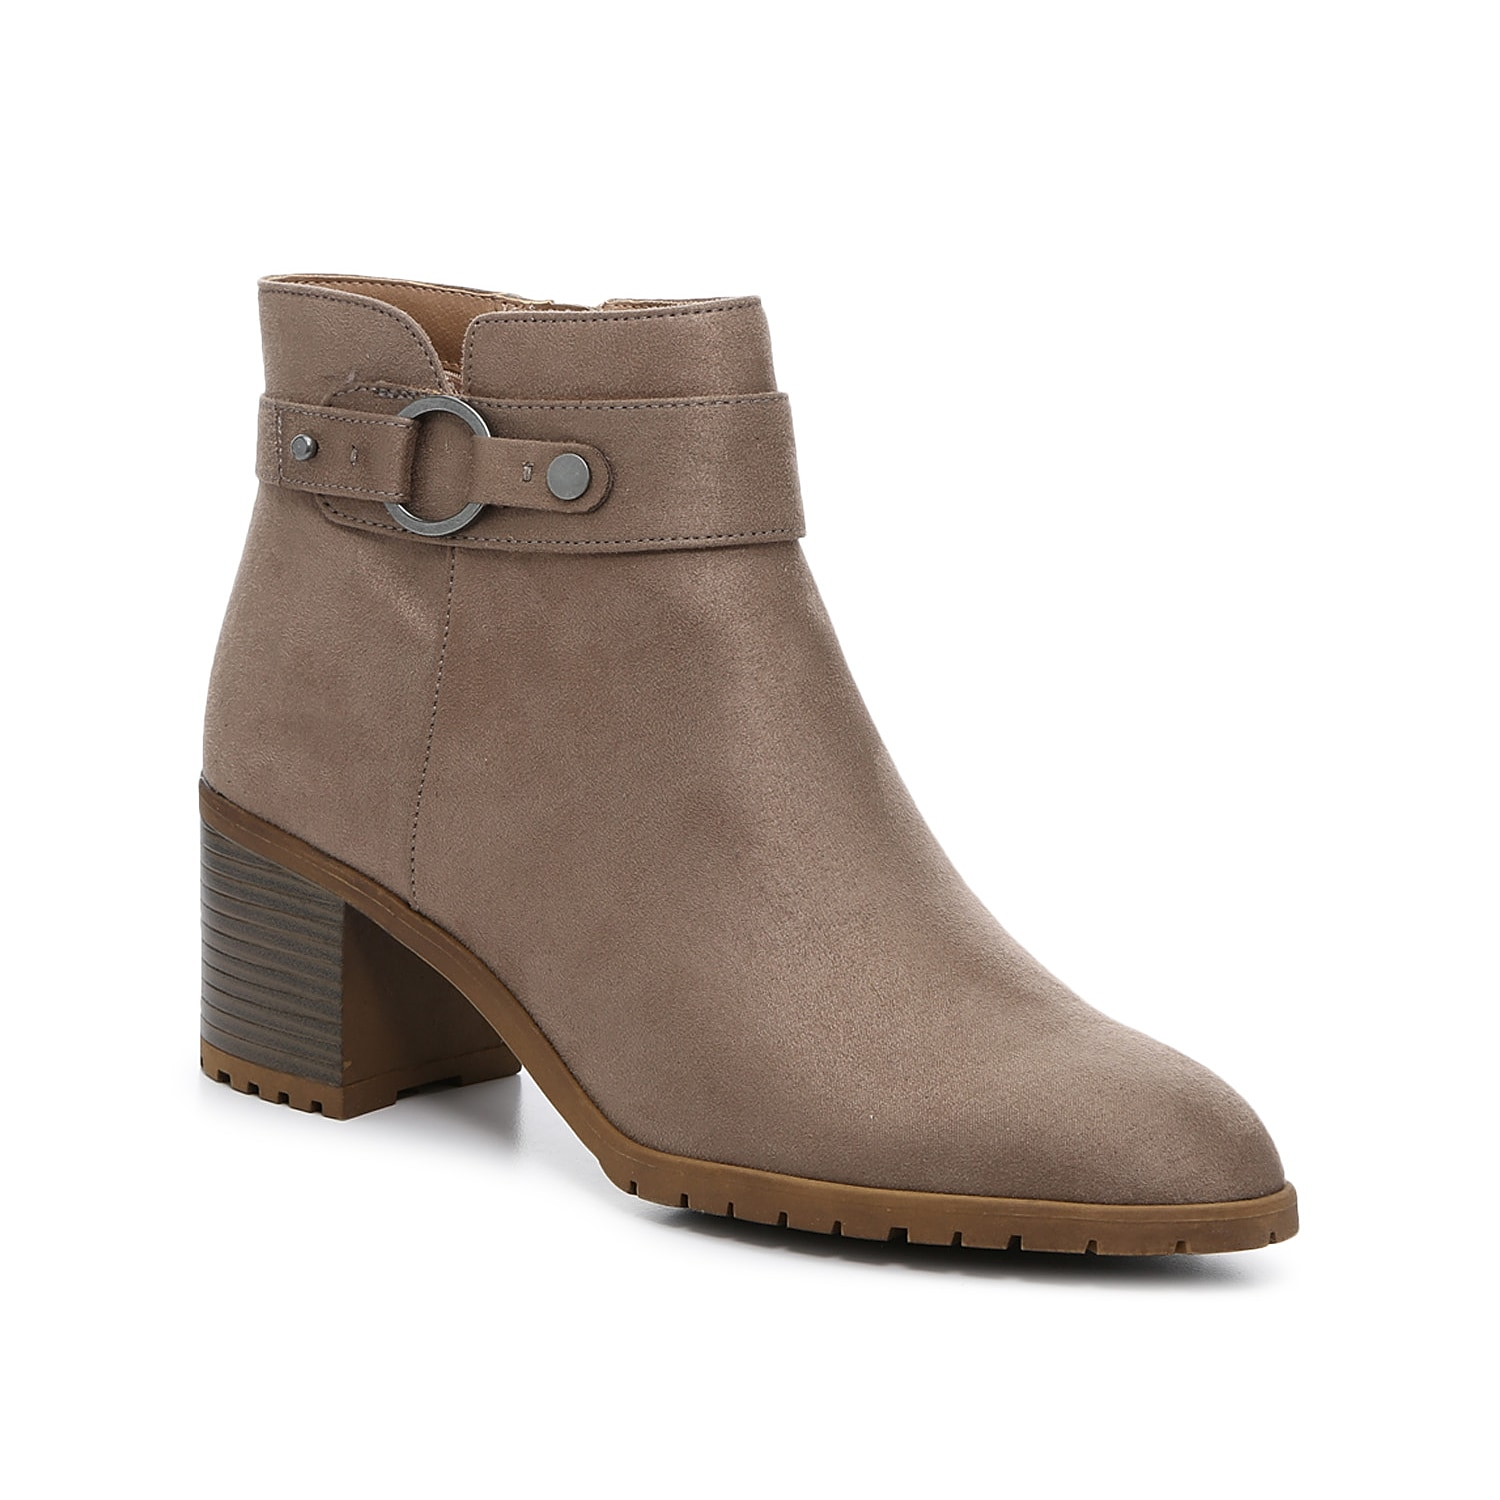 Get the flexibility and style you\\\'ve wanted with the Life Stride Miranda boot. An interior zipper makes on-and-off wear easy, and the lugged outsole provides walkable traction without weighing down the feel of these ankle booties.Click here for Boot Measuring Guide.